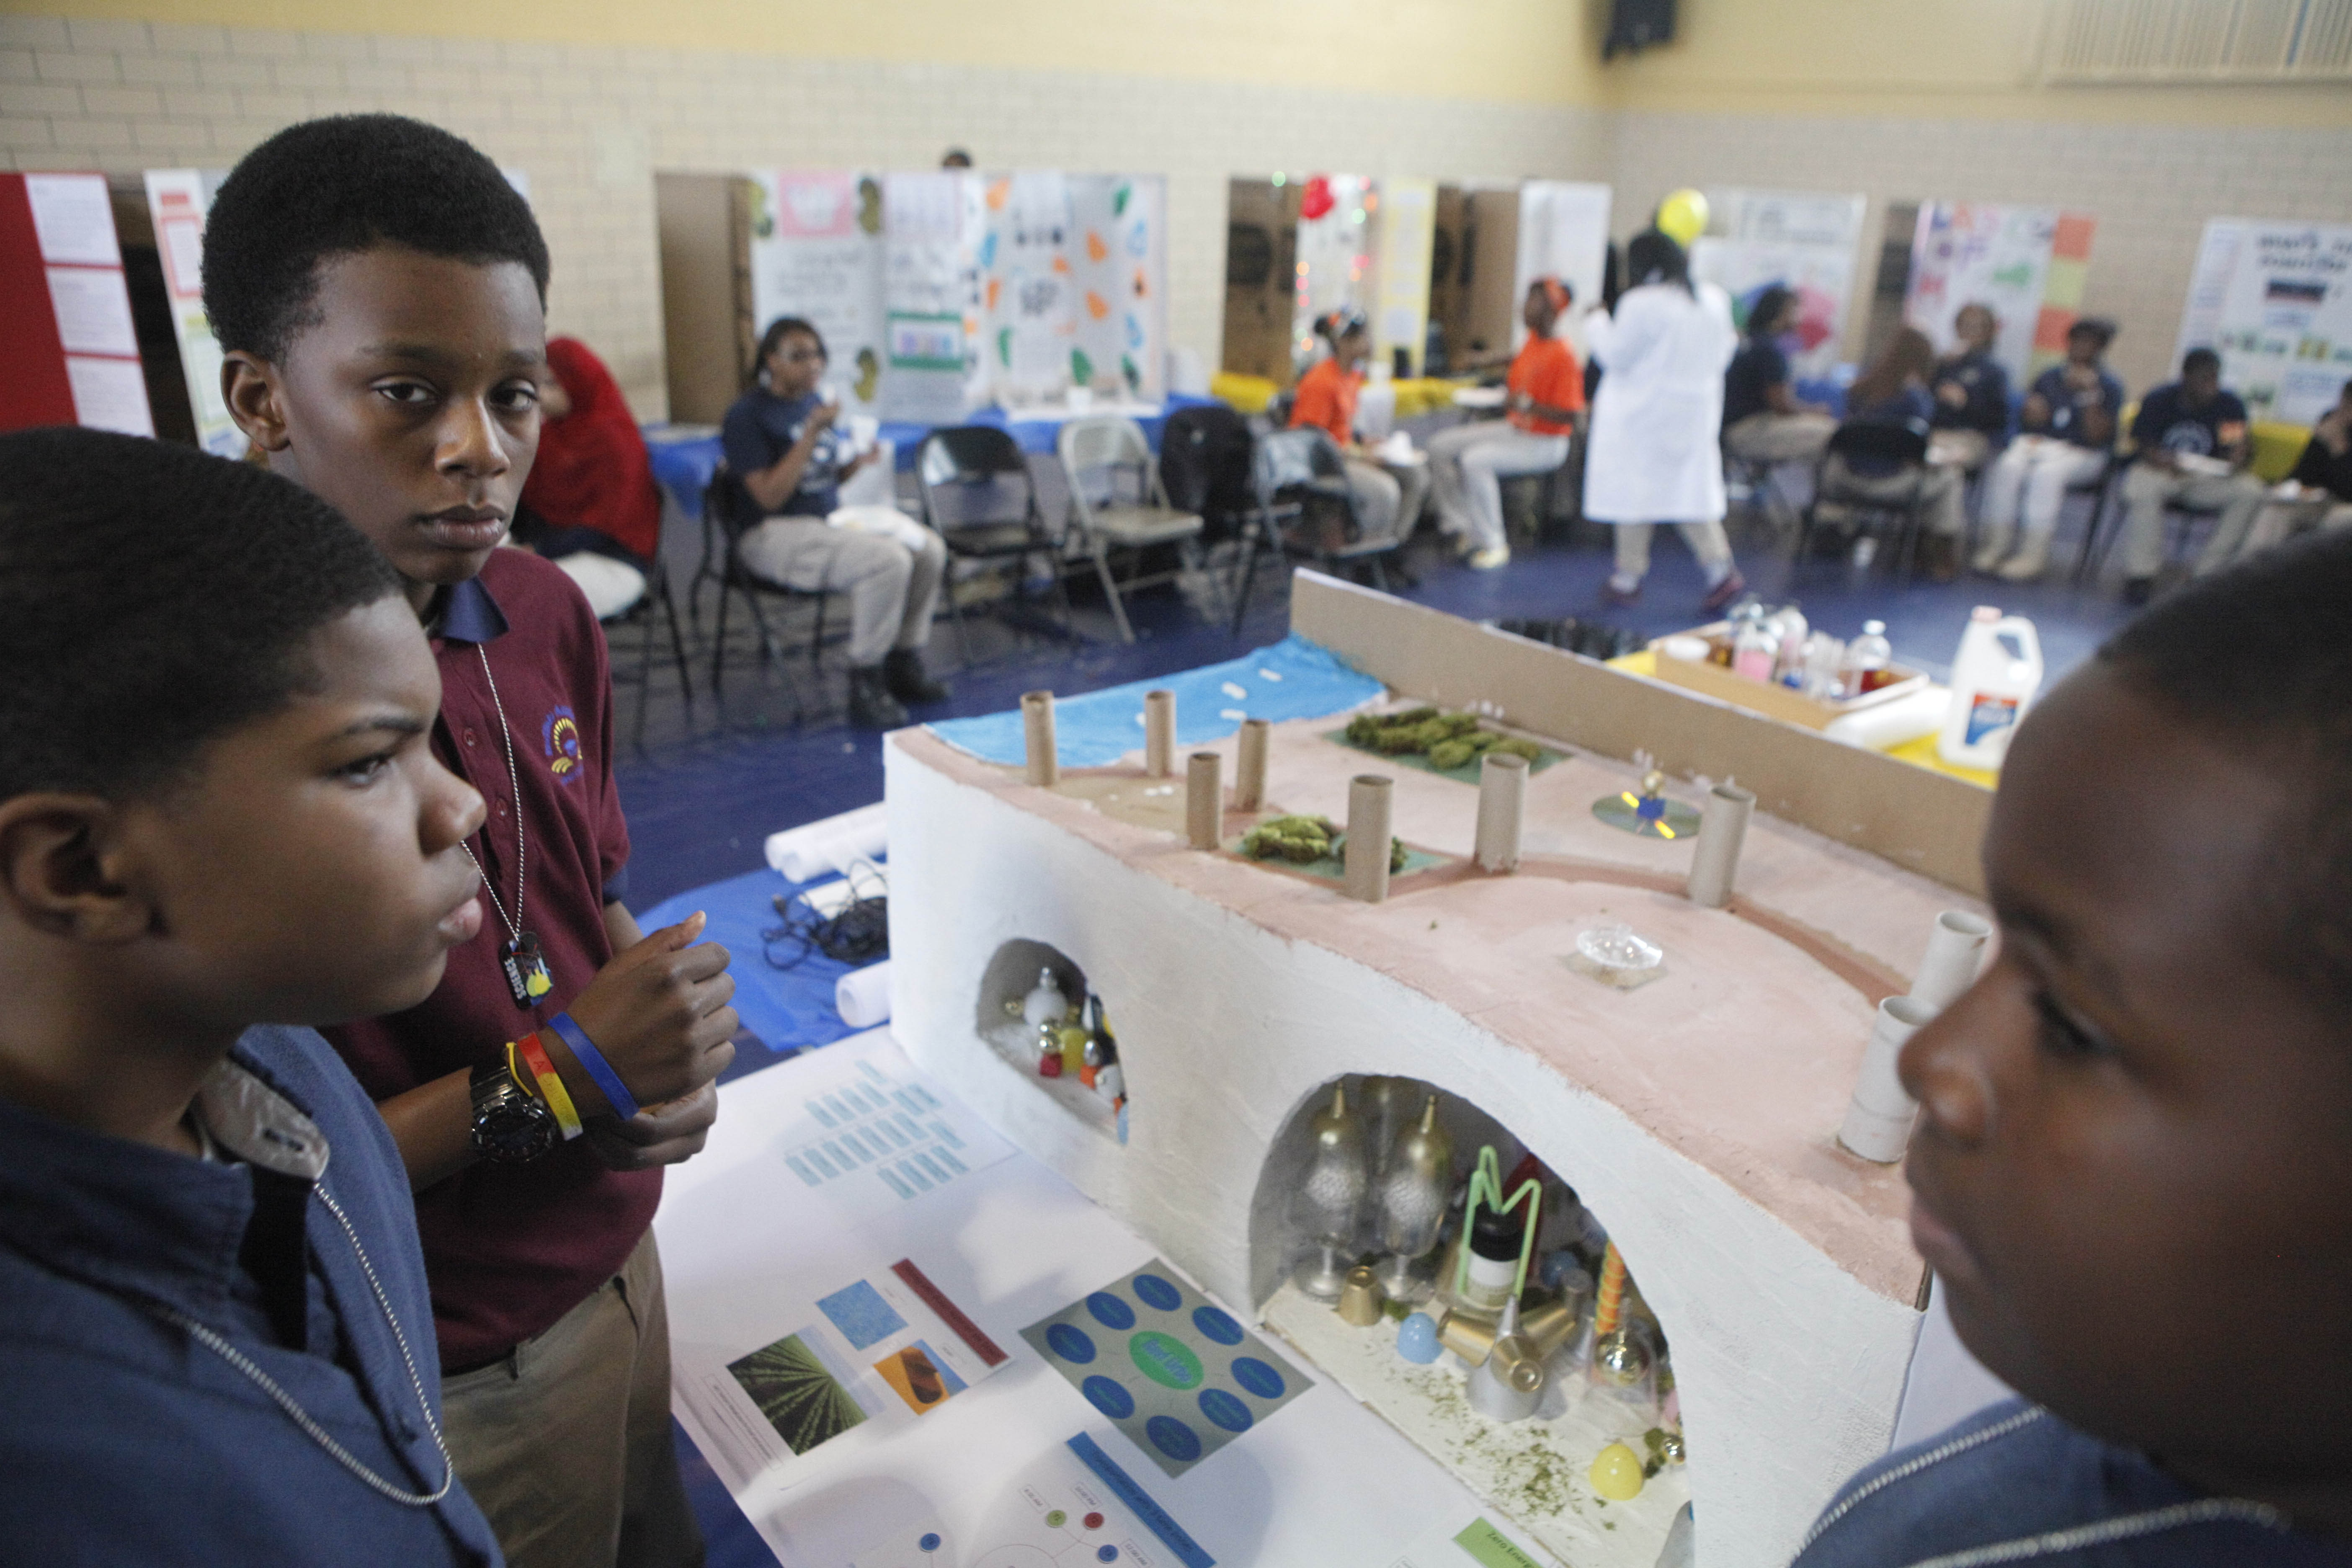 In this 2012 photo, eighth-graders Miles Glenn, Lauren Killian and Matthew Jeffries explain the model city they built for the annual Science Fair at the Buffalo Academy of Science Charter School. Their city, dubbed Revi Urbo, was a zero-energy, self-sustaining community built underground in the desert.